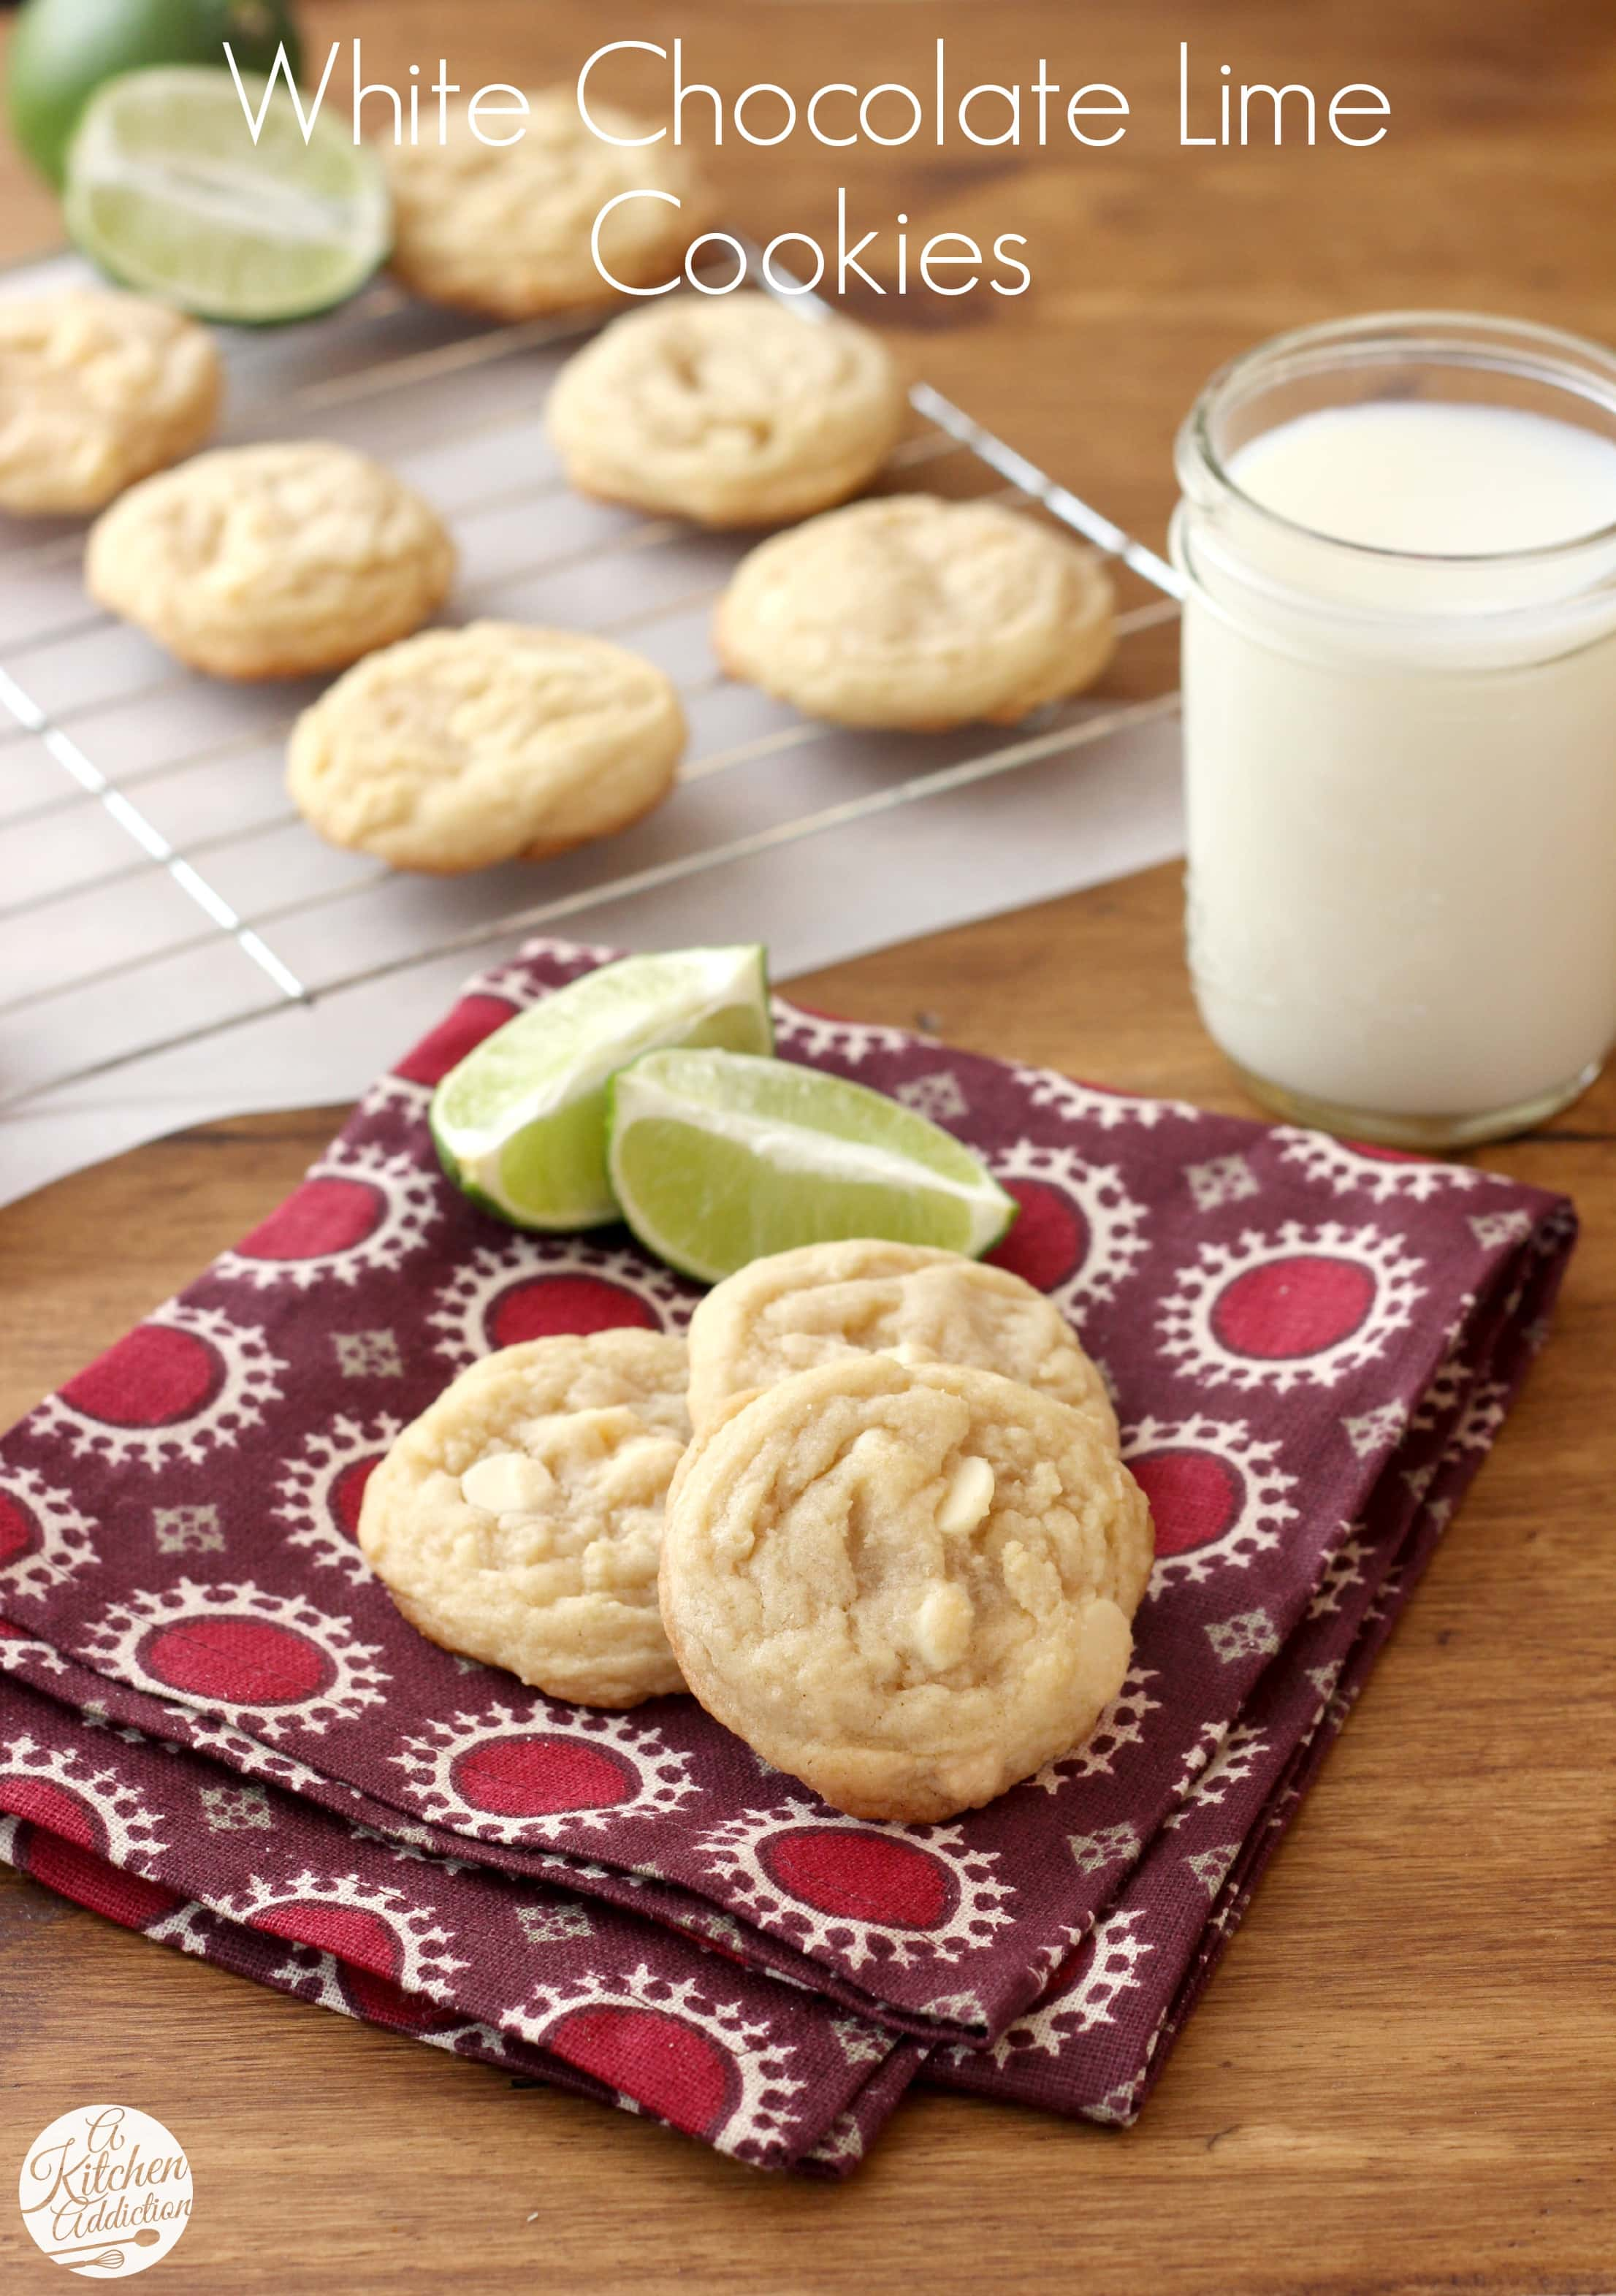 Key lime cookies recipes white chocolate